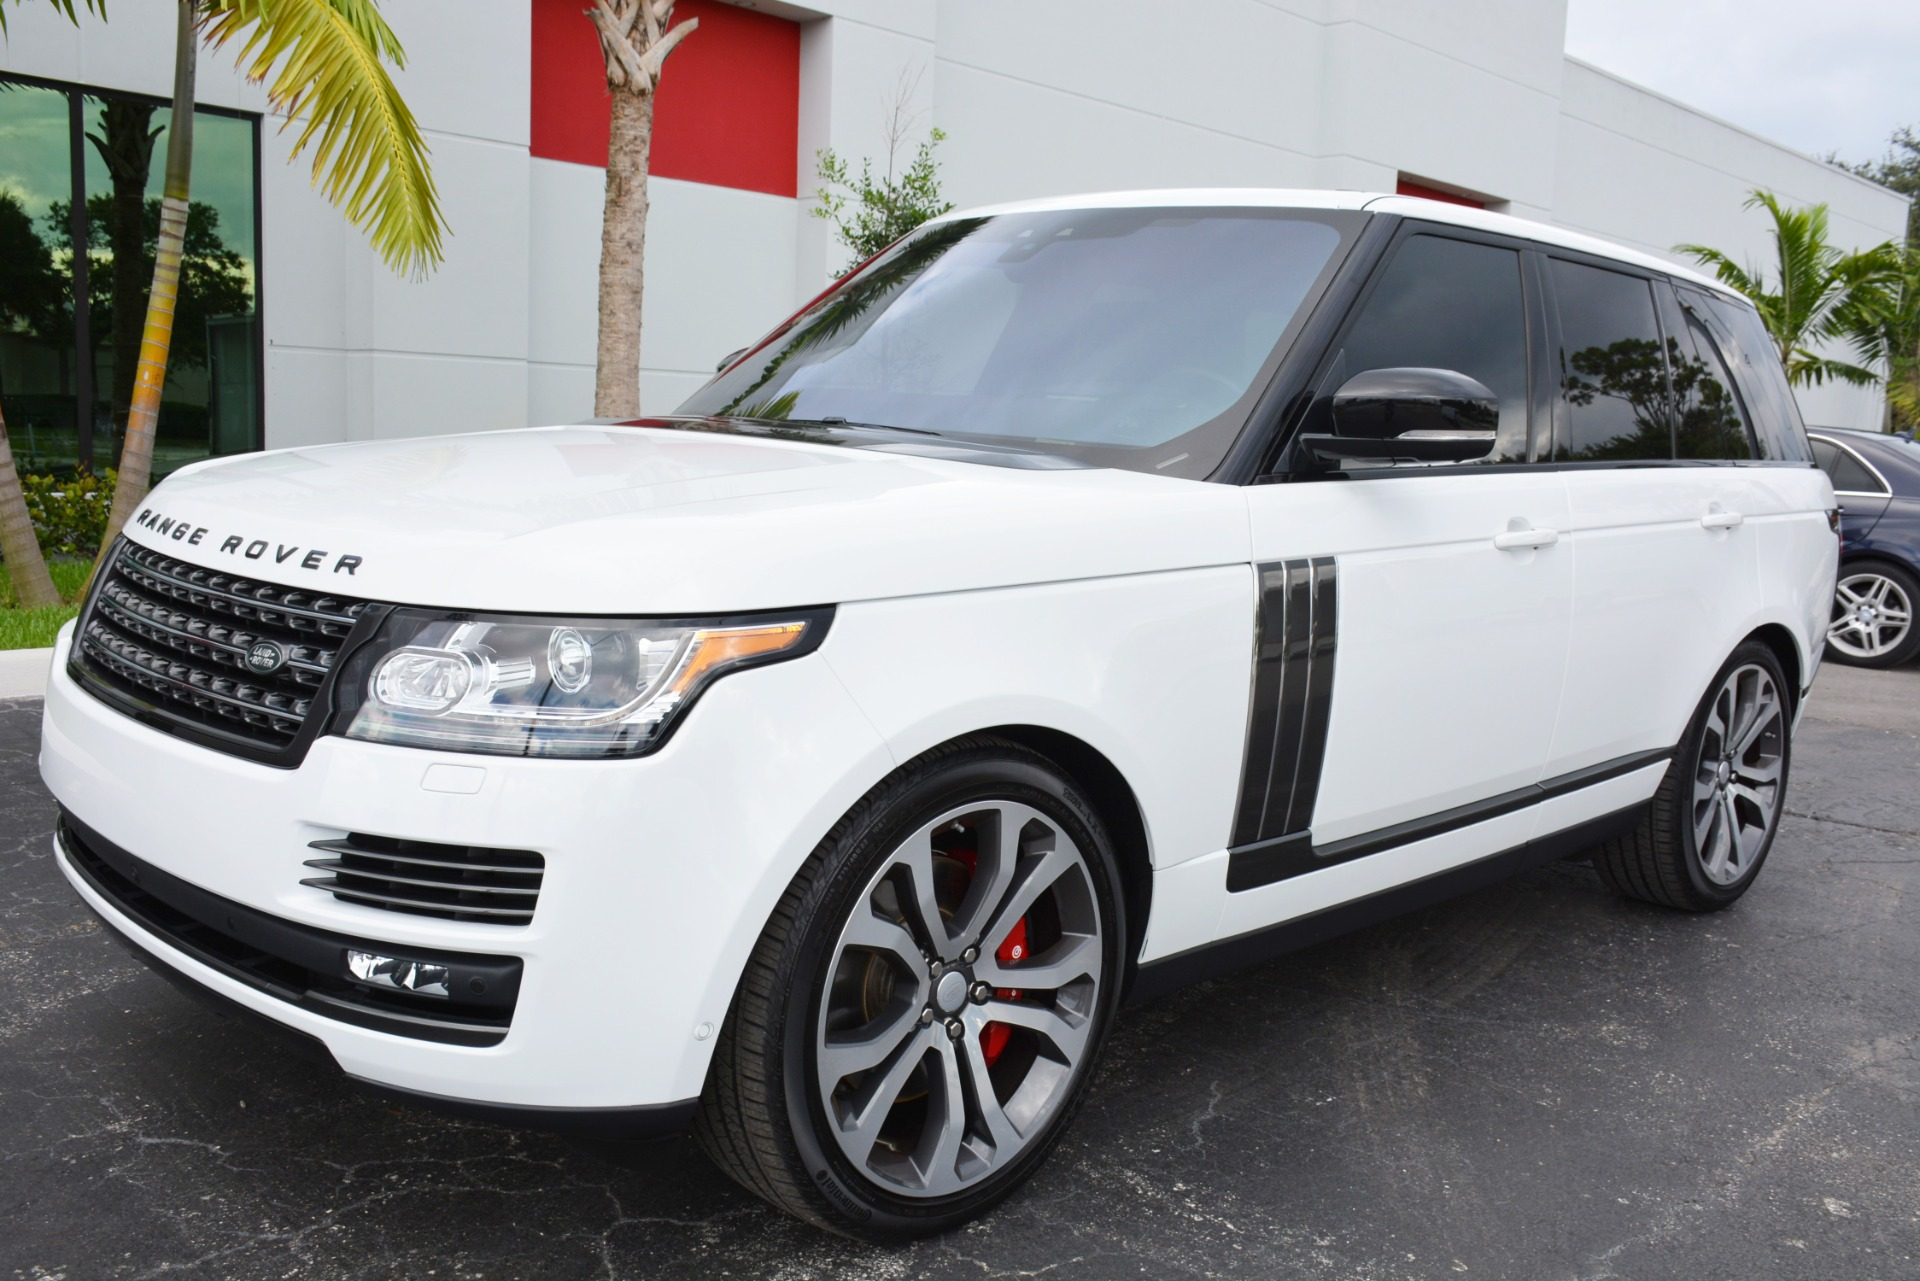 used 2017 land rover range rover svautobiography dynamic for sale 127 900 marino. Black Bedroom Furniture Sets. Home Design Ideas